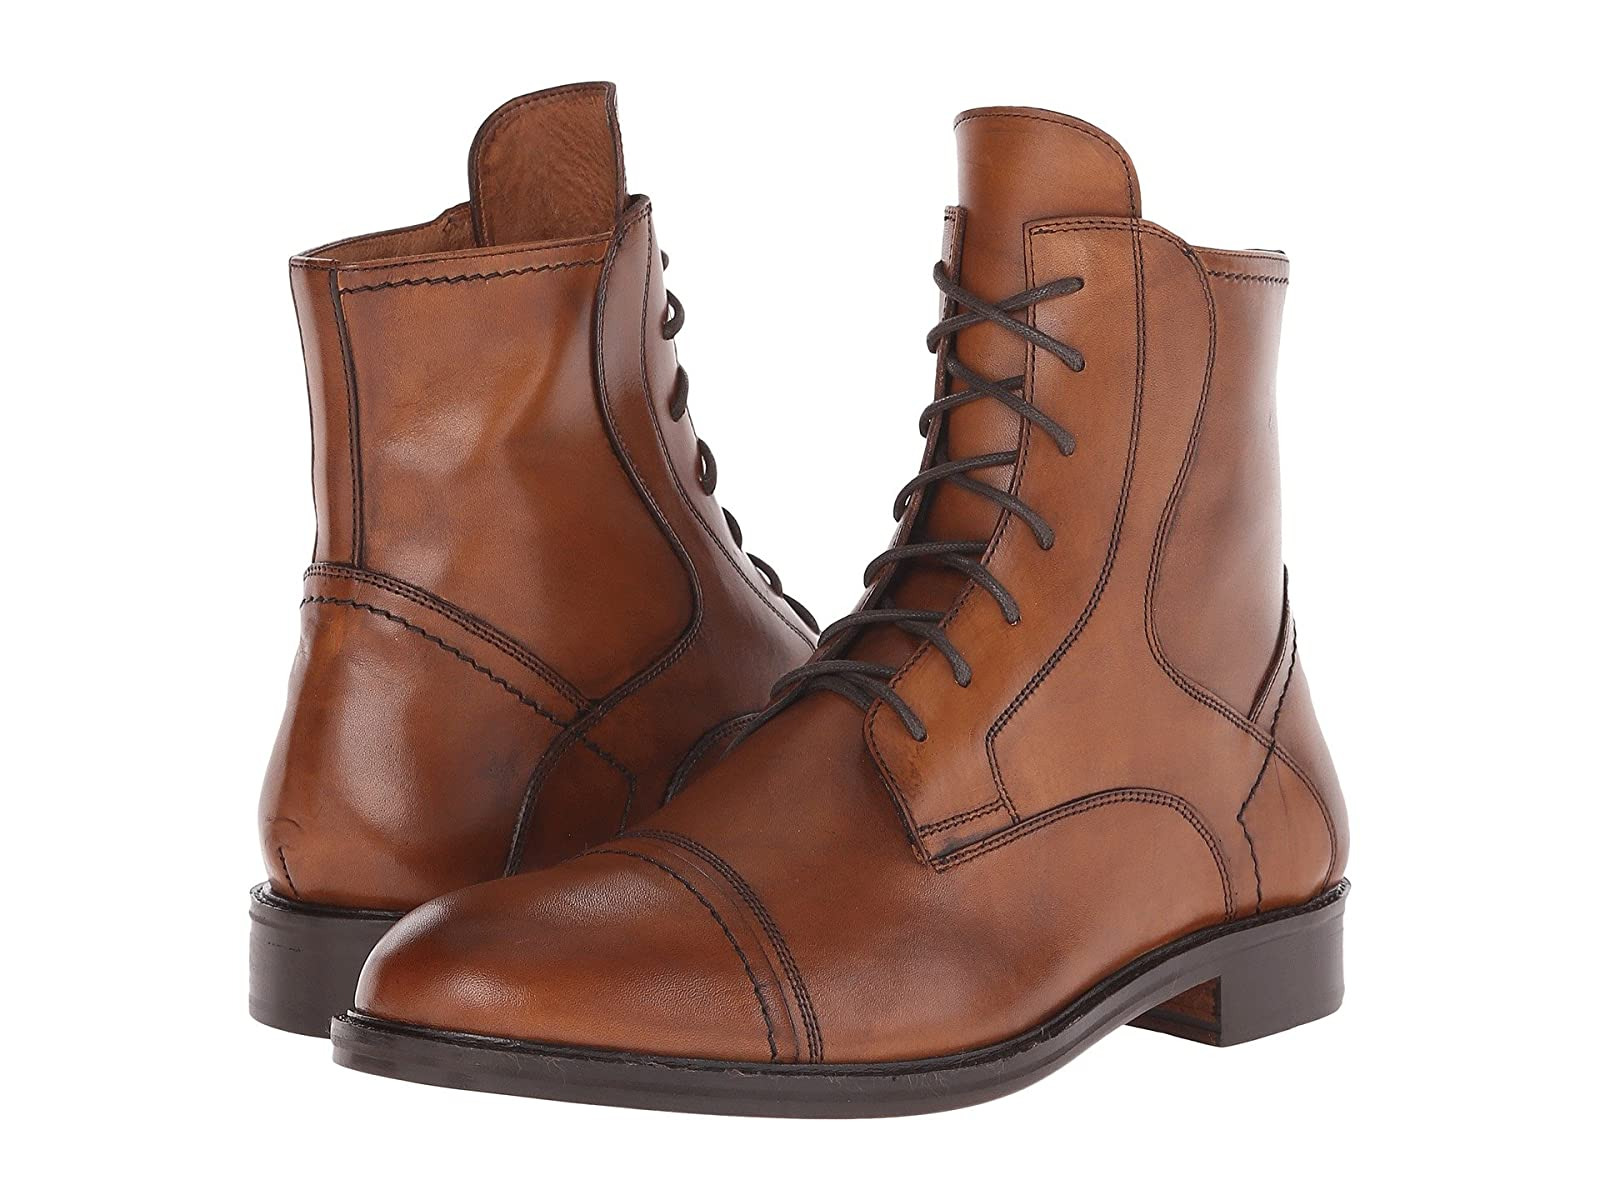 Massimo Matteo 7-Eye Cap Toe BootCheap and distinctive eye-catching shoes